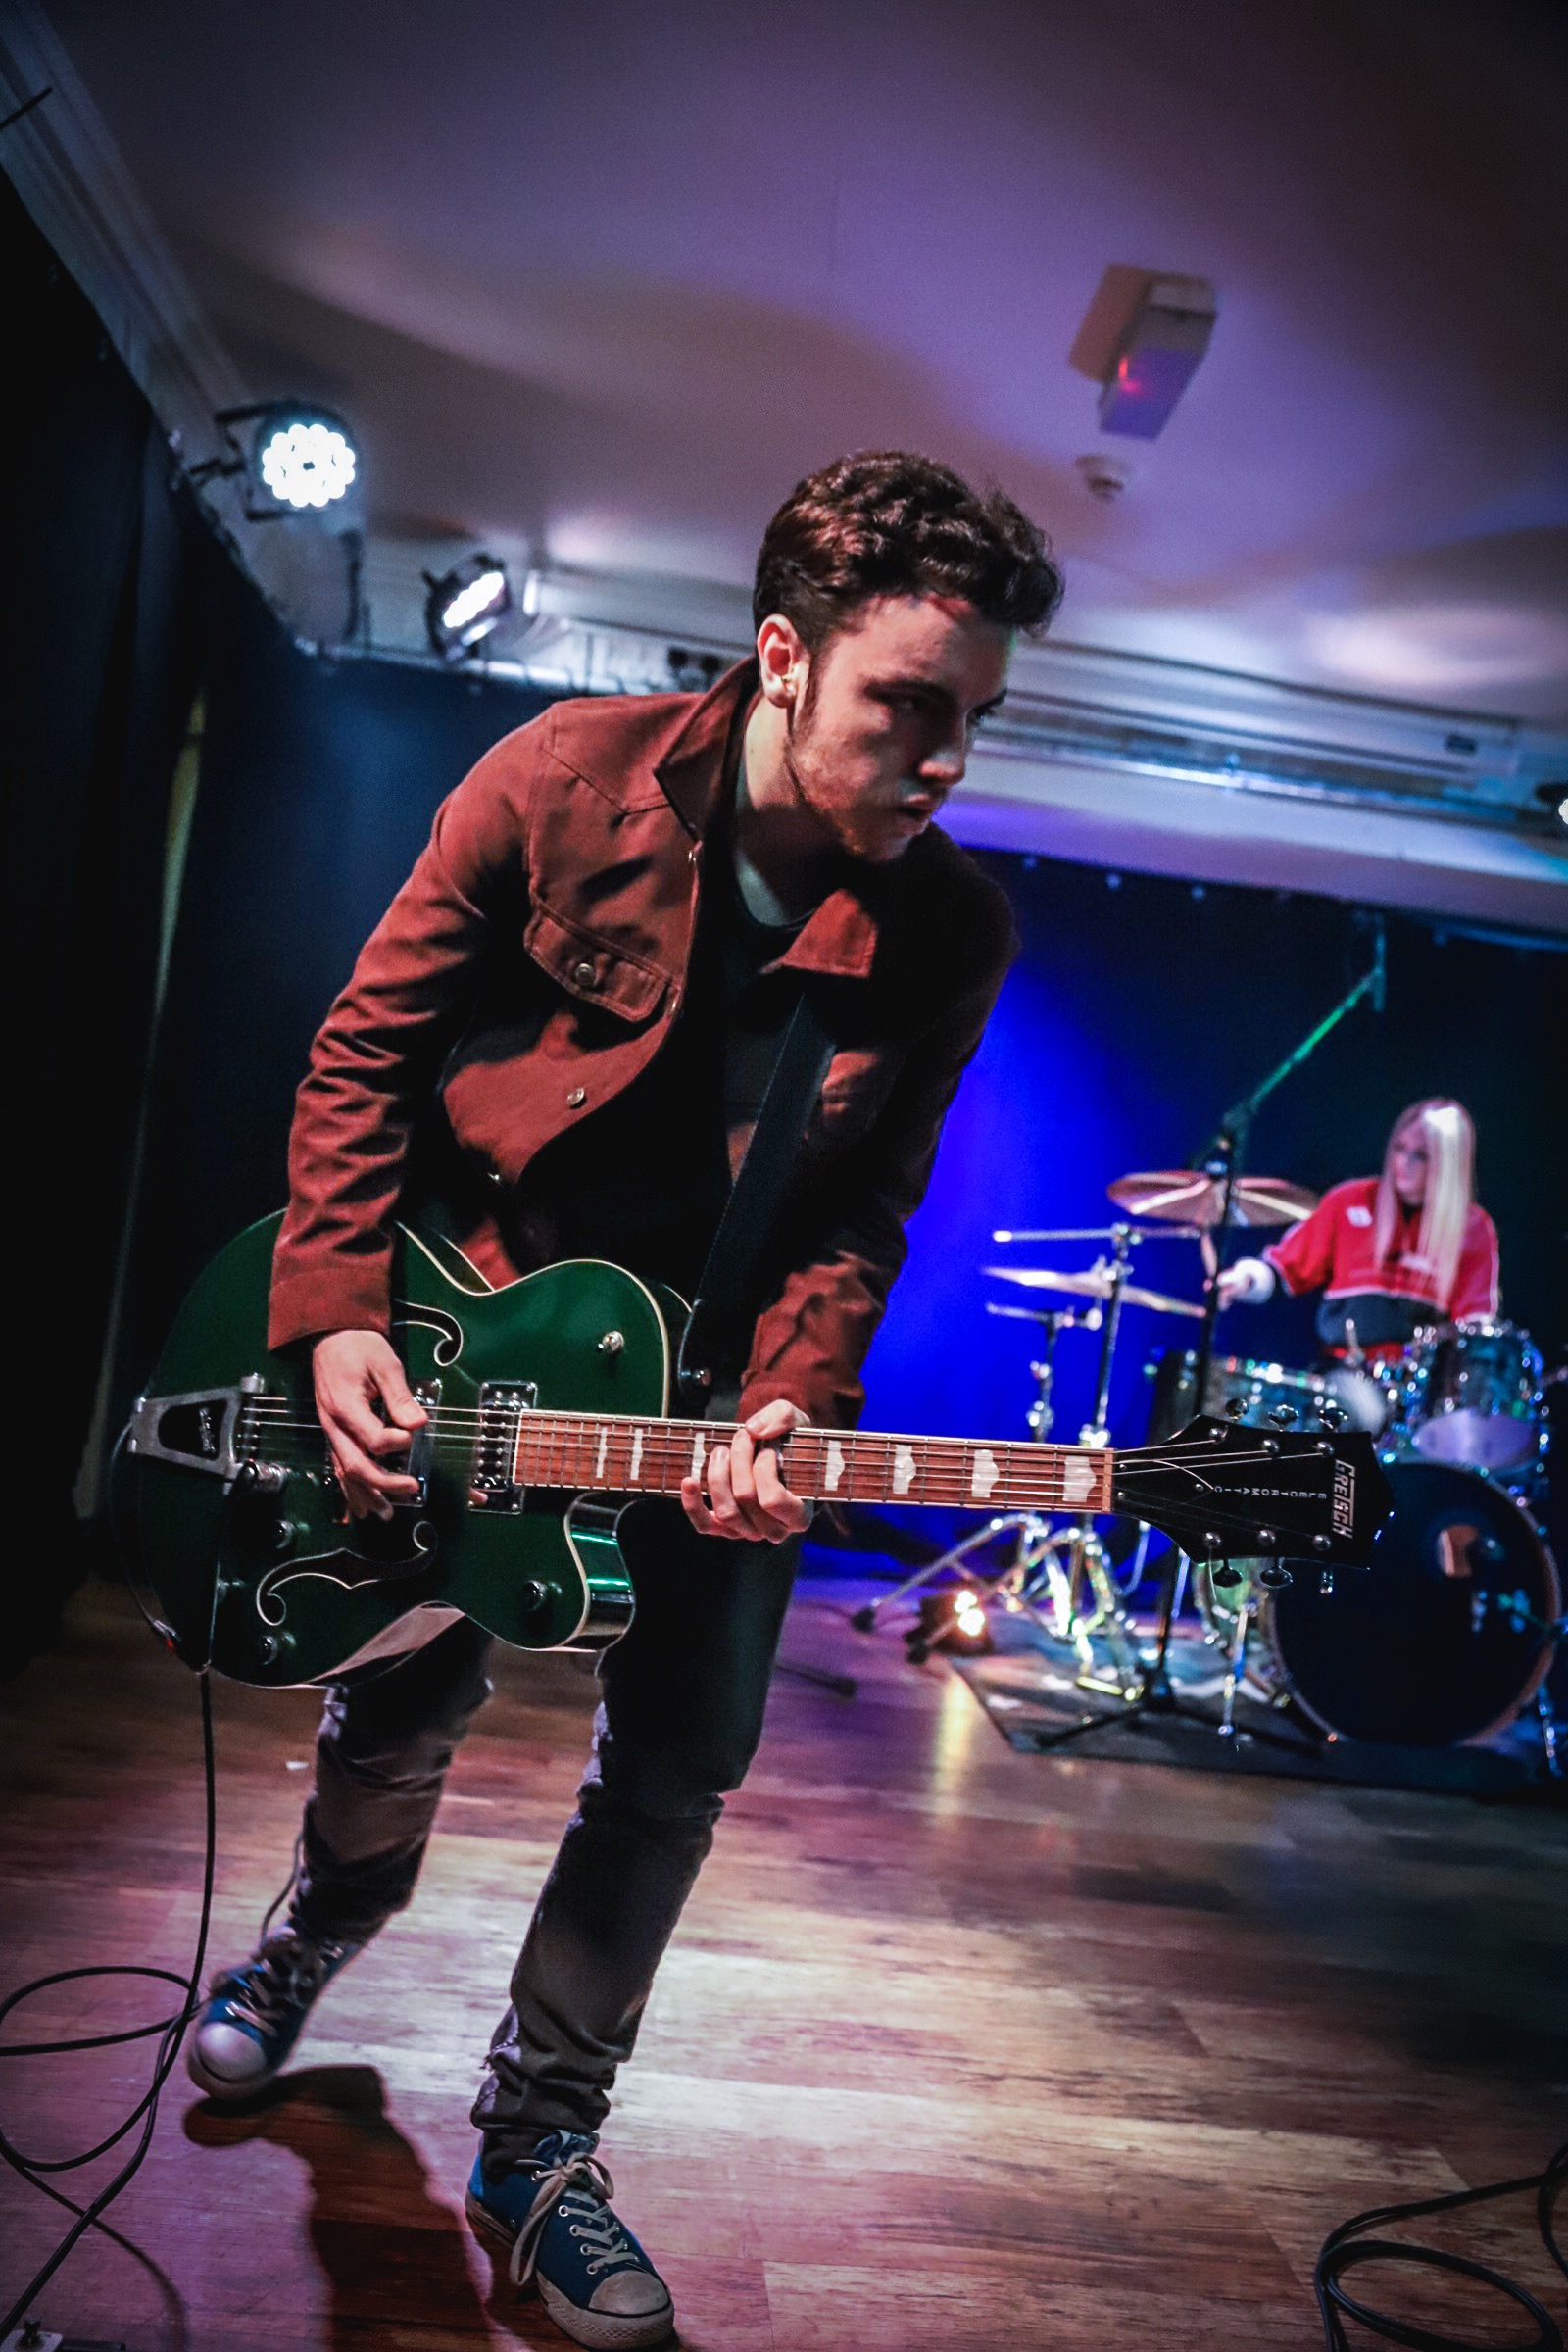 e521ea3648f8 Singer Wanted For Rock Band In London Posted by The Reverie 6 months ago